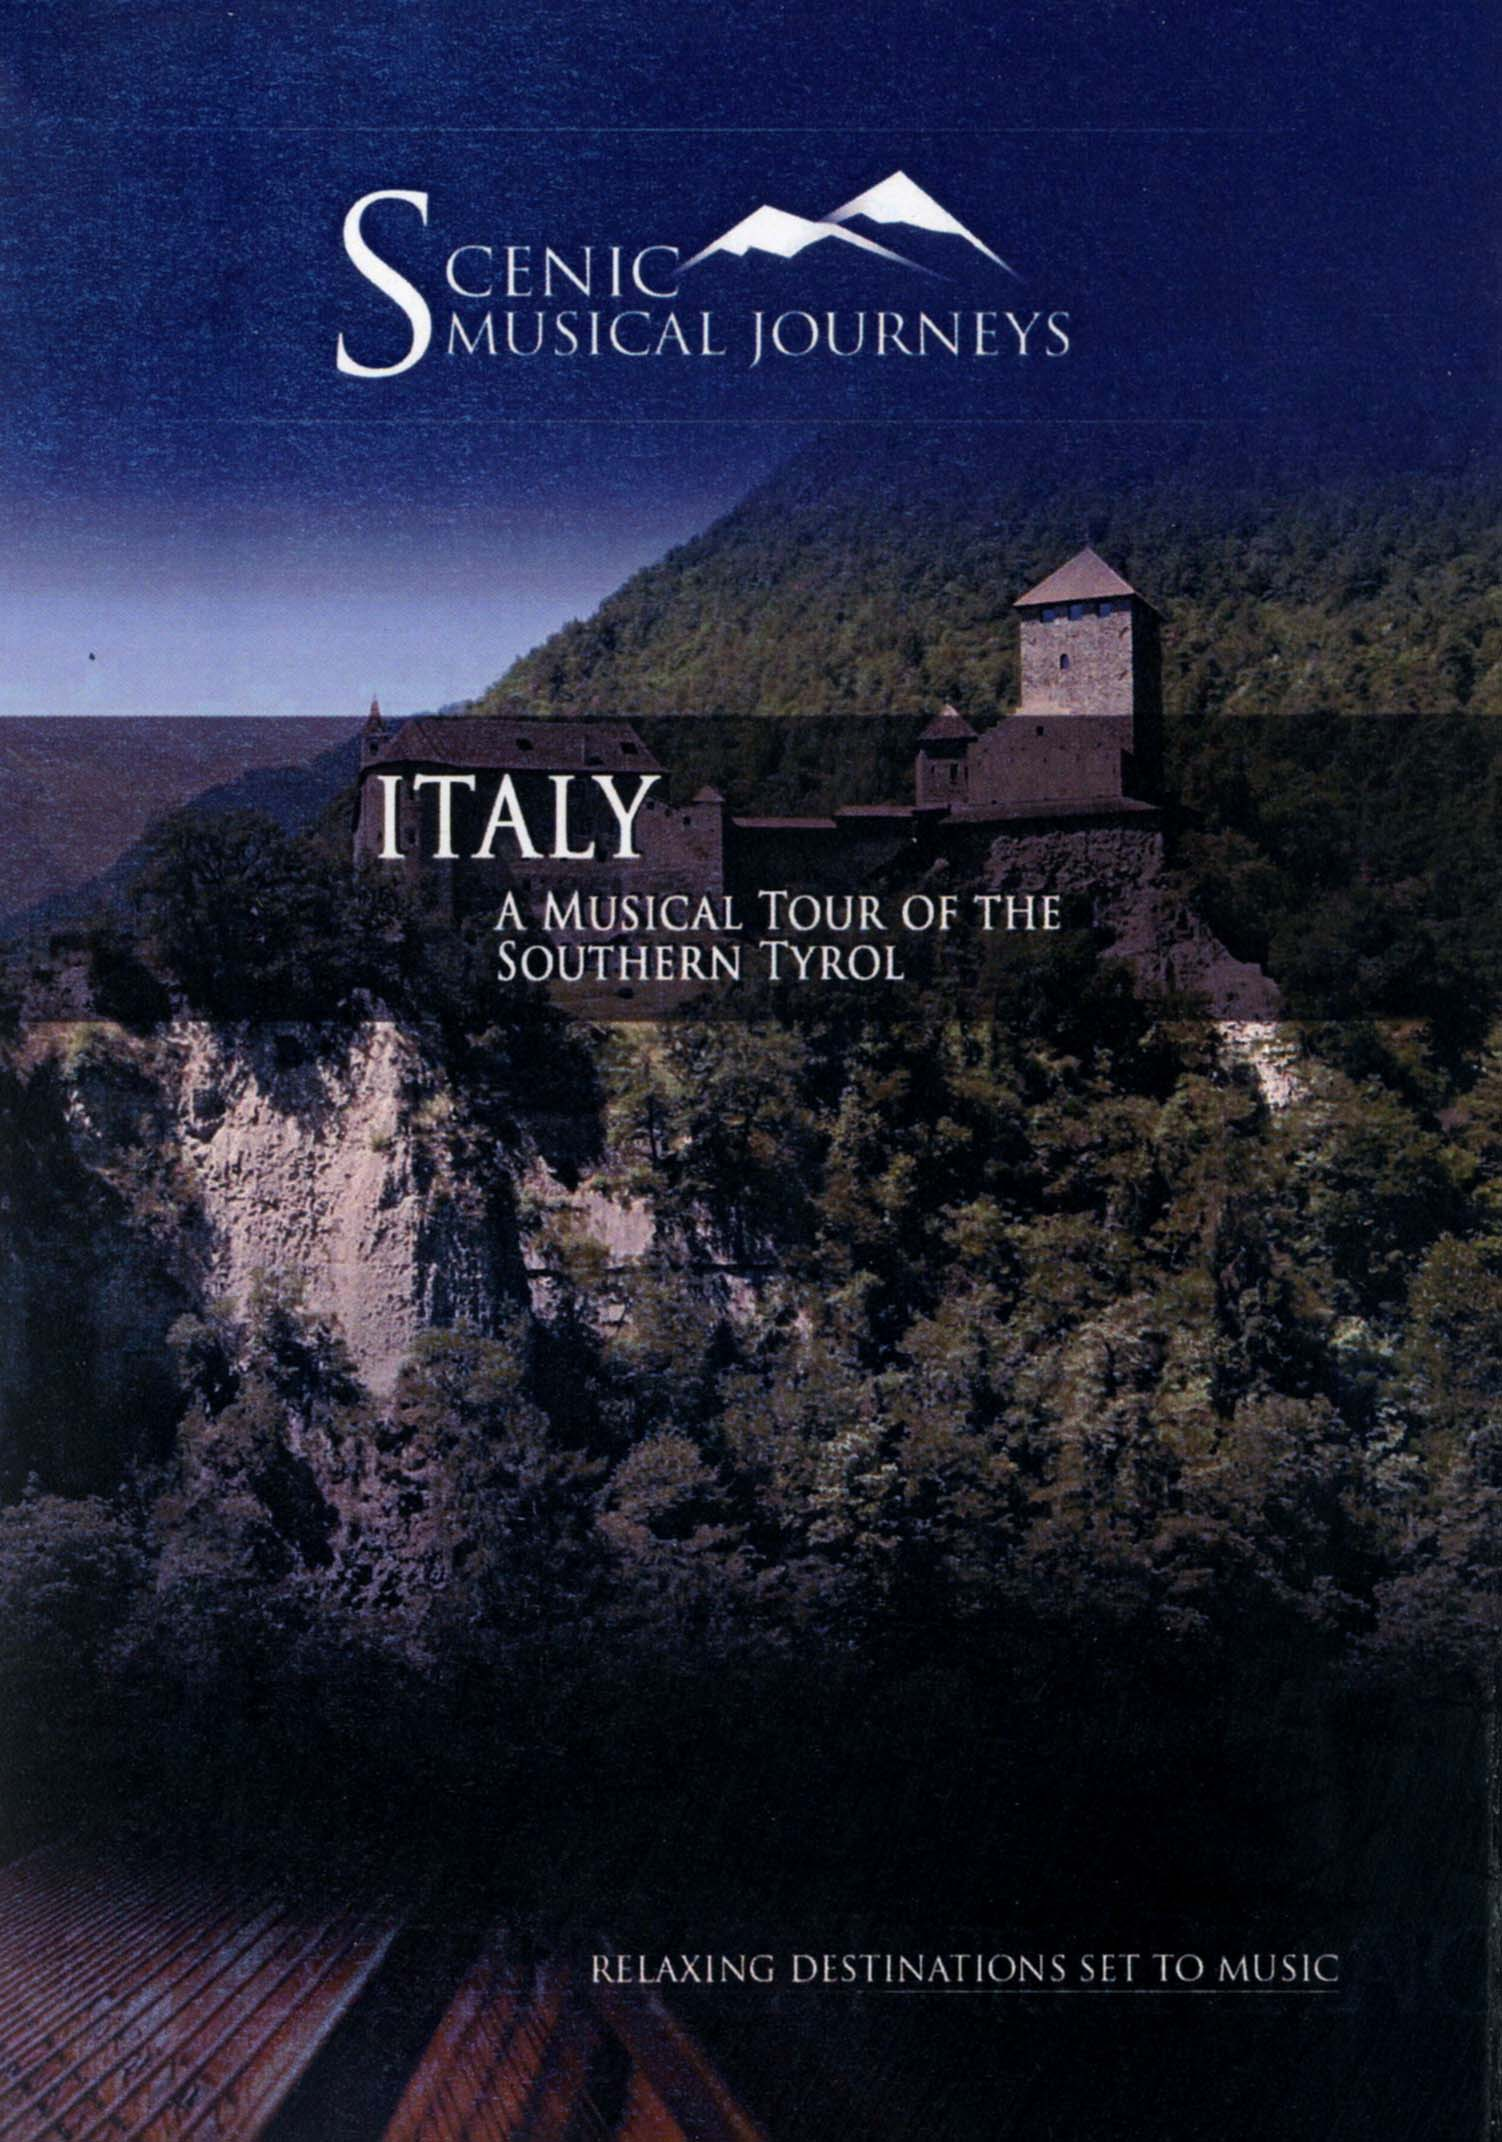 Scenic Musical Journeys: Italy - A Musical Tour of the Southern Tyrol